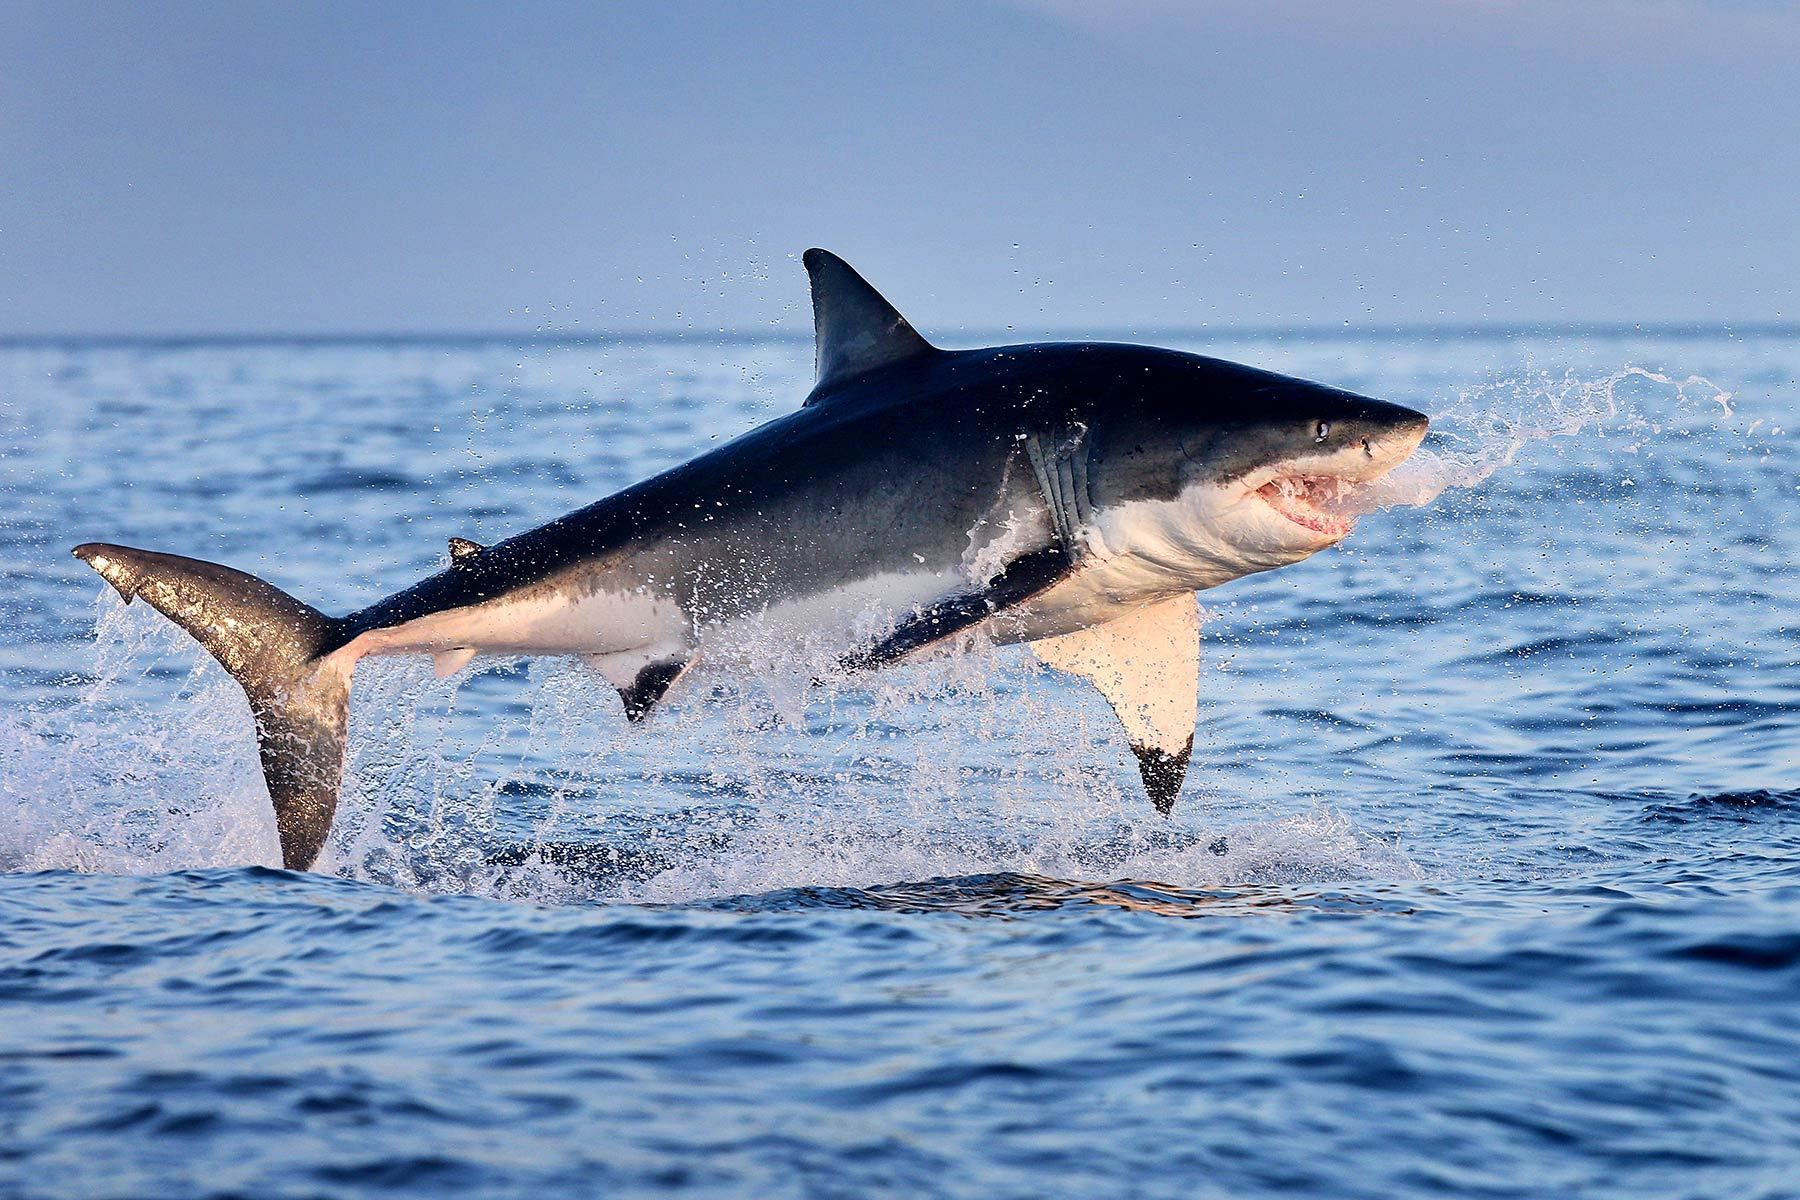 Jumping great white shark wallpaper